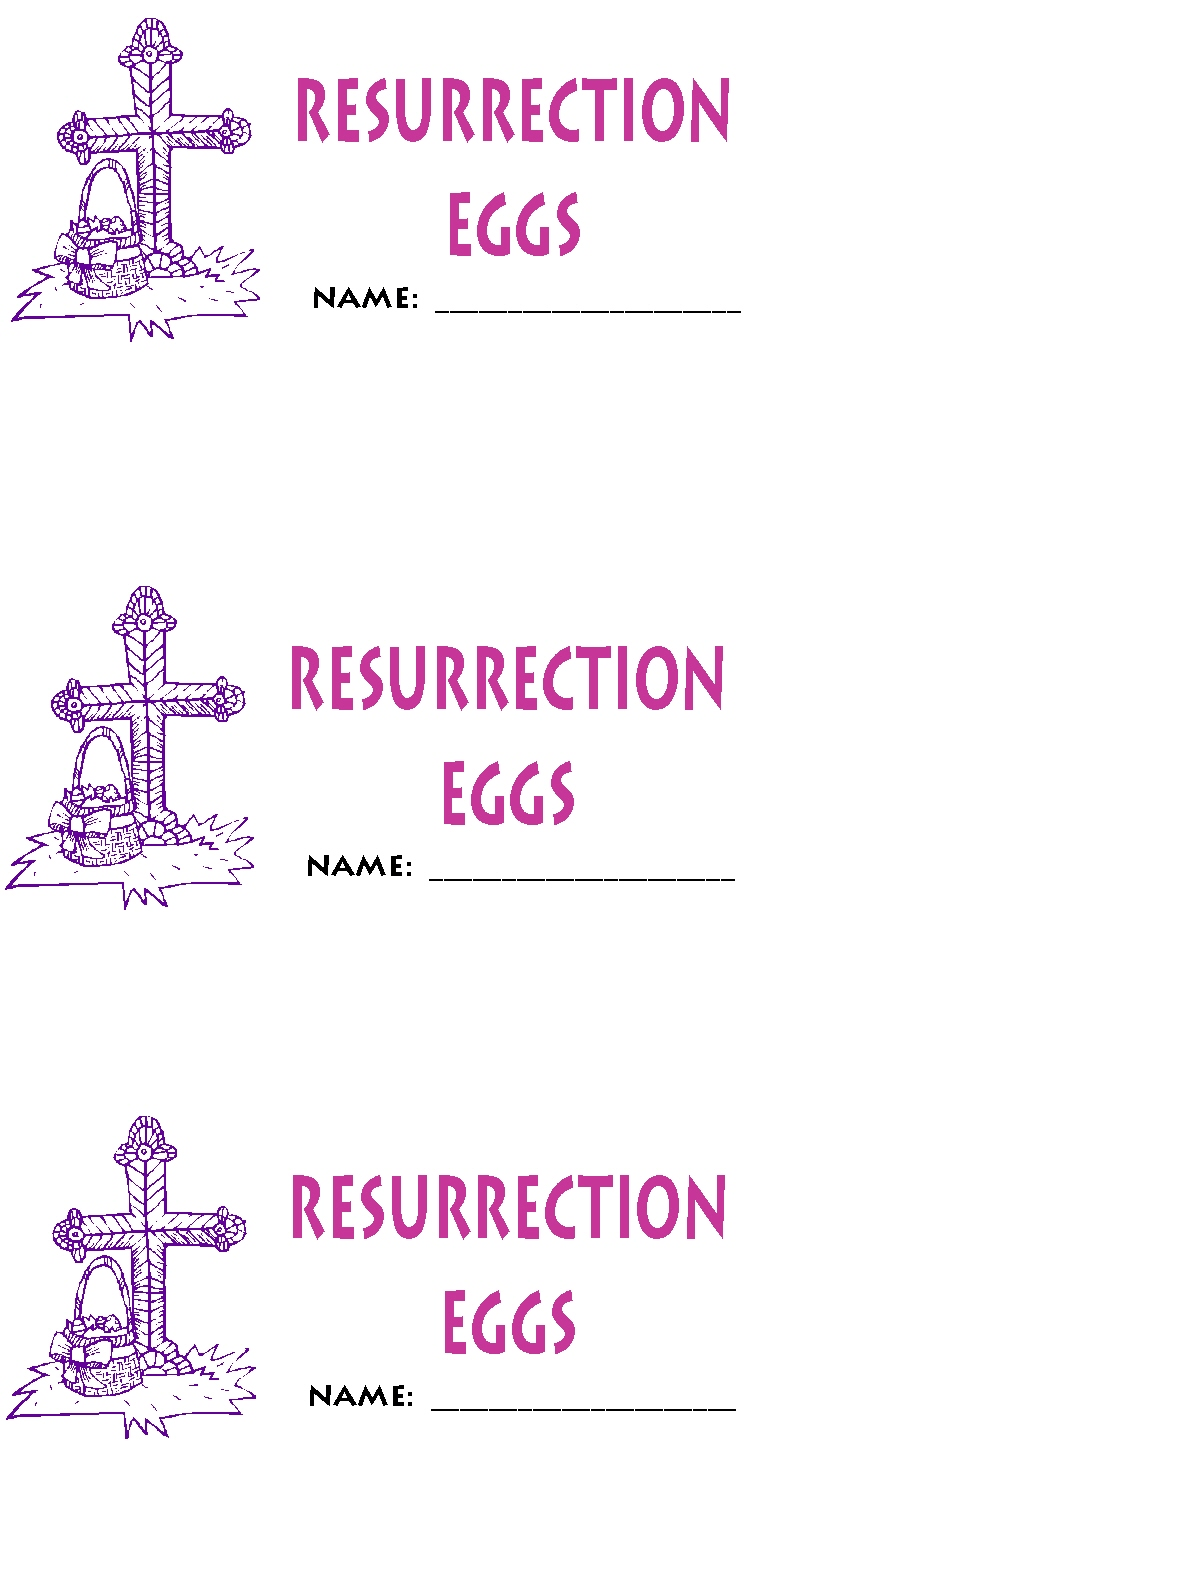 graphic relating to Resurrection Egg Story Printable titled Selfmade Resurrection Eggs free of charge printables Kathy Hutto